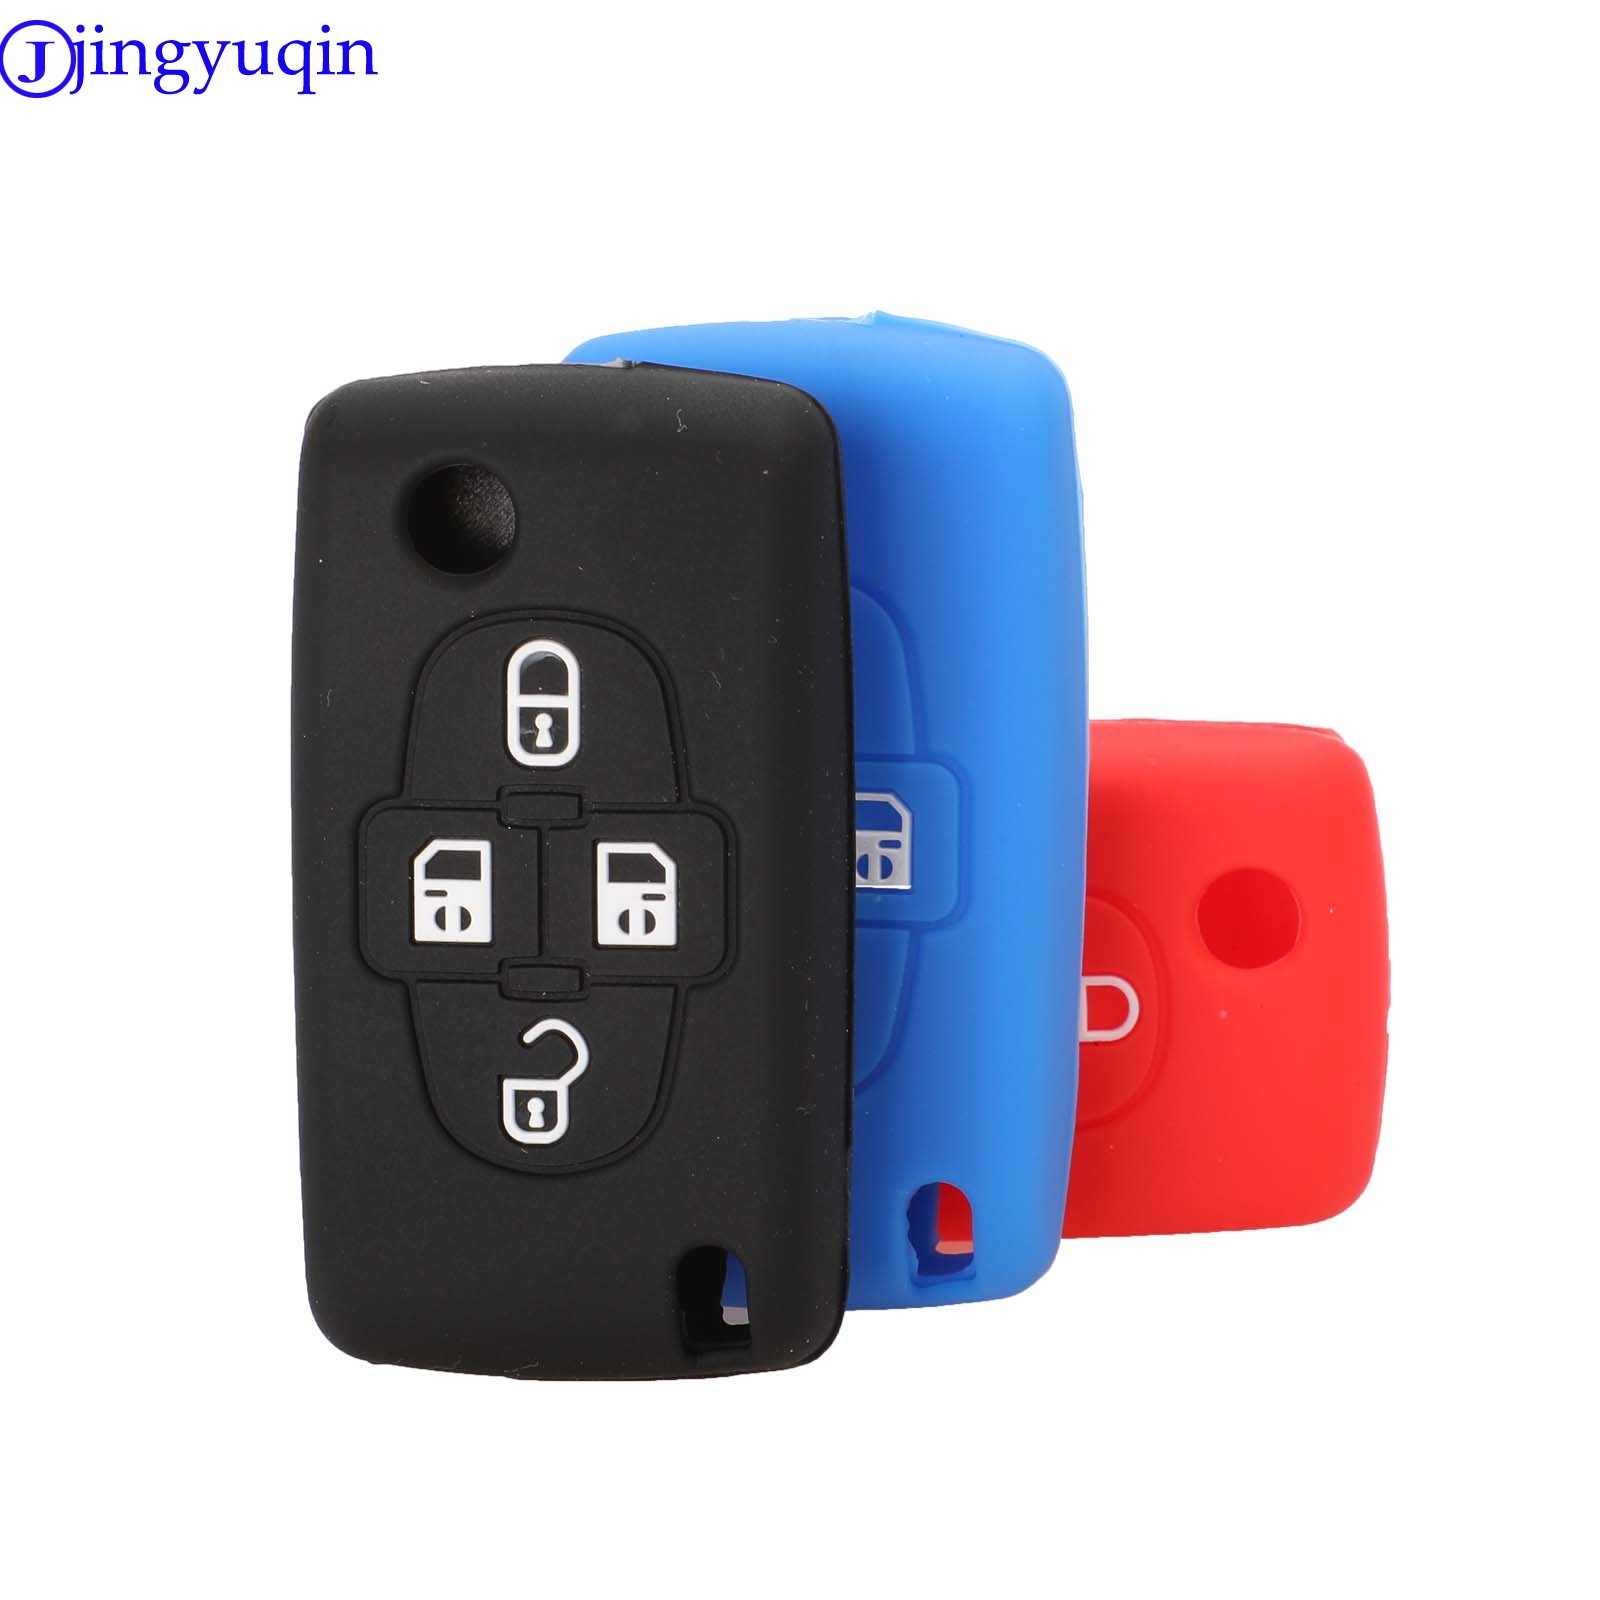 Jingyuqin Remote Key Silicone Cover Case Car Key For Peugeot 1007 807 For Citroen C8 4 Buttons Folding Flid